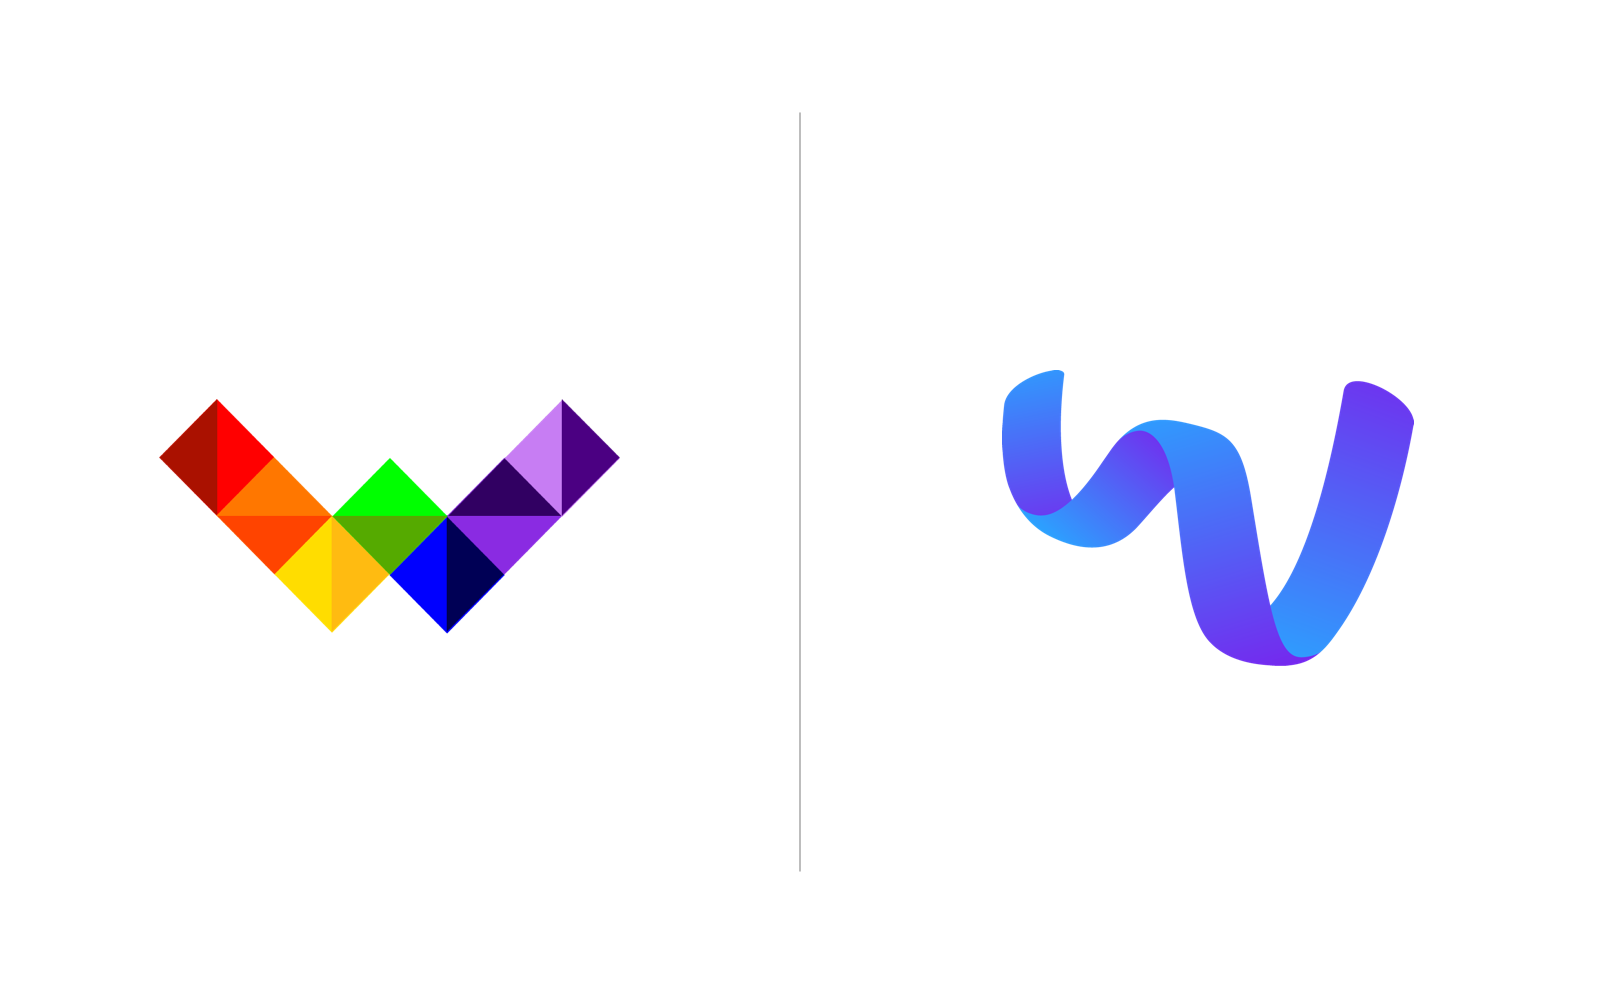 A comparison of Wunderite's original logo and the one we newly crafted.